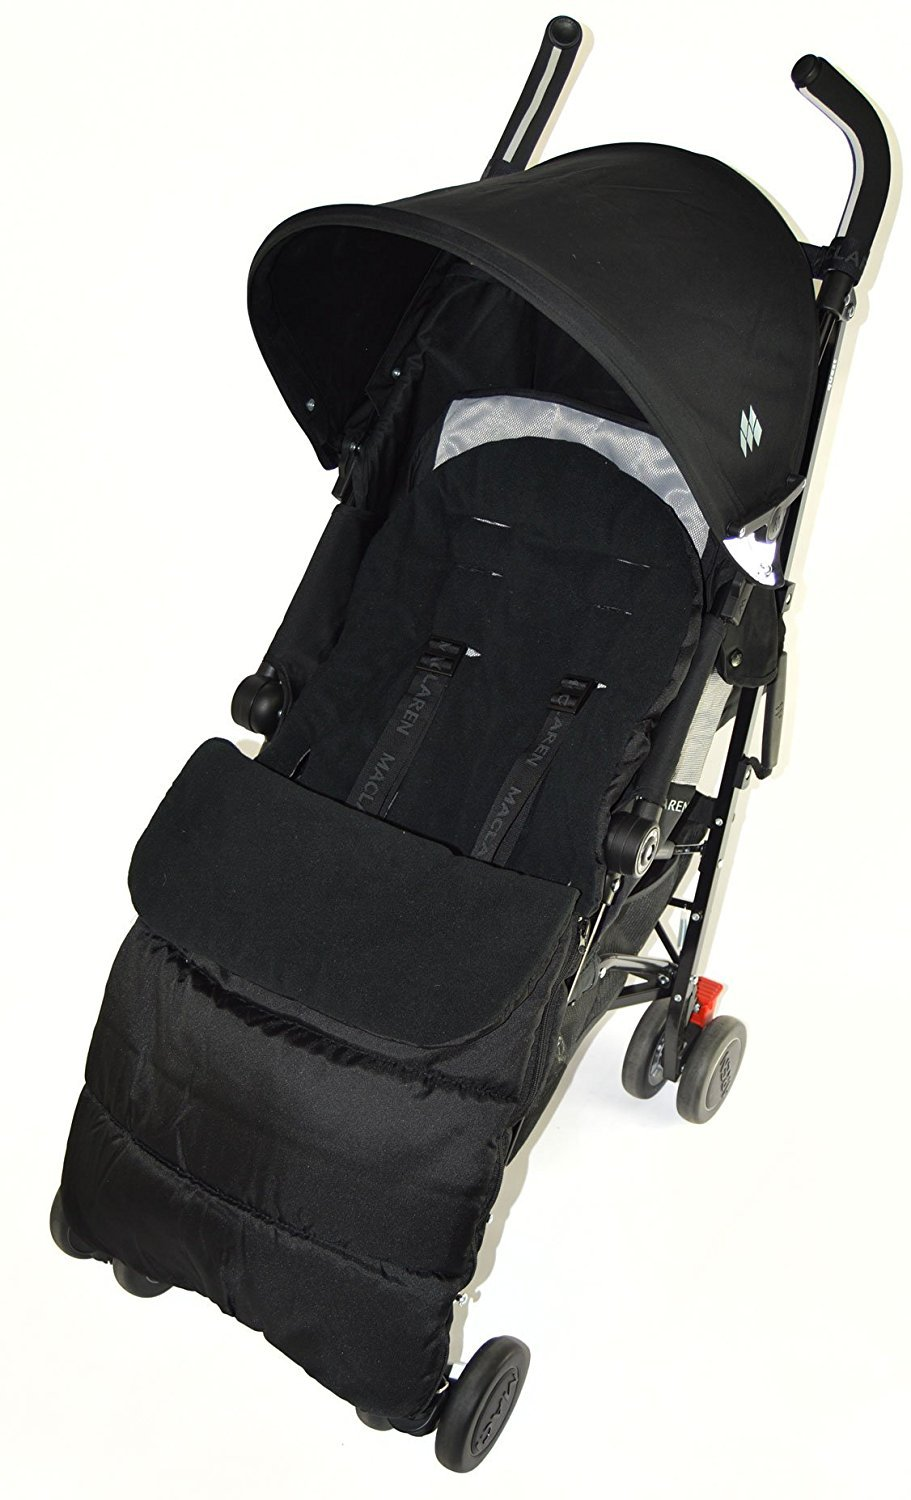 Coprigambe/Cosy Toes compatibile con passeggino EasyWalker Black Jack For-Your-Little-One Others